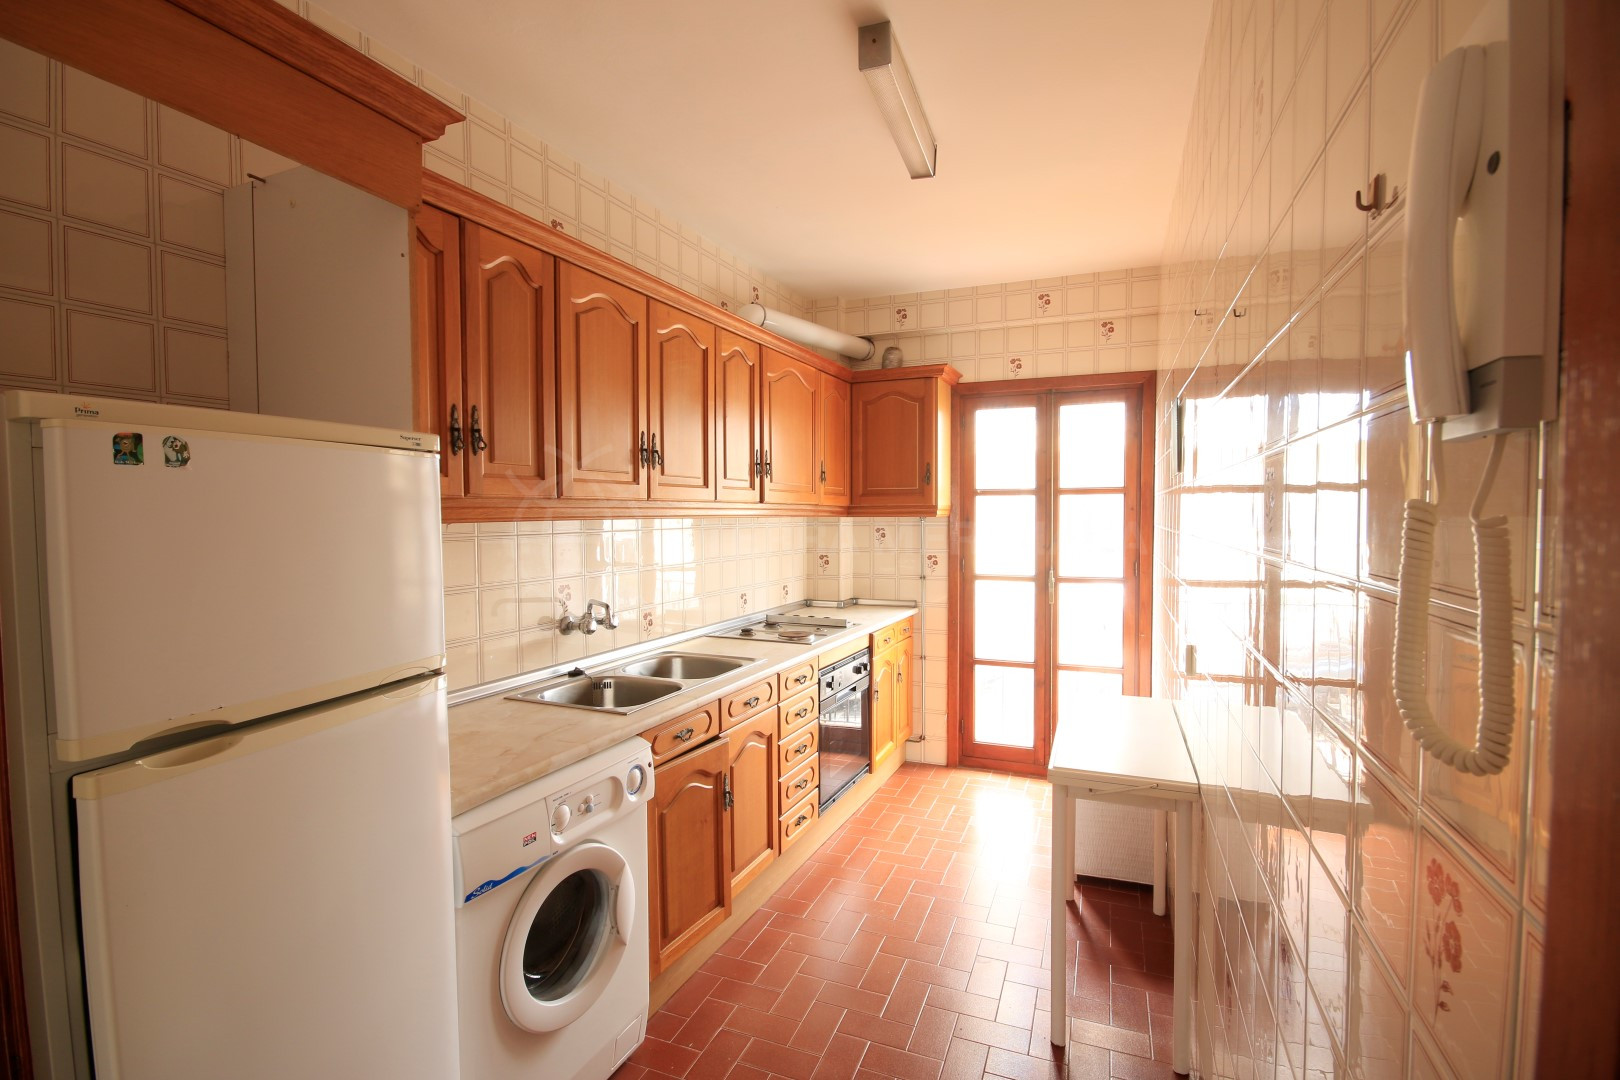 Kitchen Room Estepona Of 2 Bedroom Apartment For Sale In The Centre Of Estepona Old